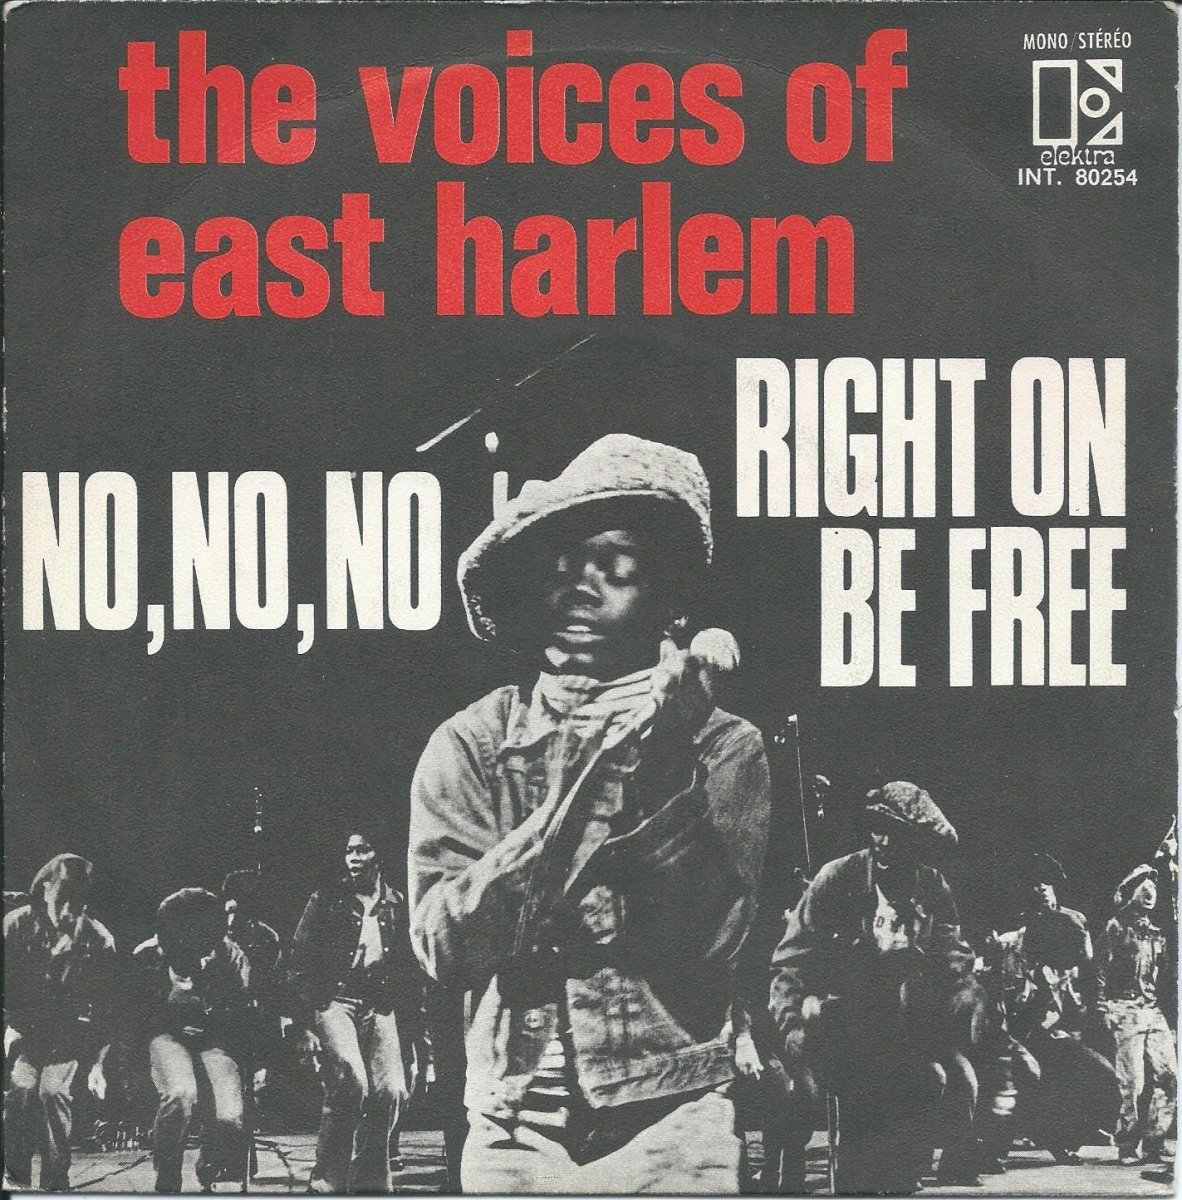 THE VOICES OF EAST HARLEM ‎/ NO, NO, NO / RIGHT ON BE FREE (7